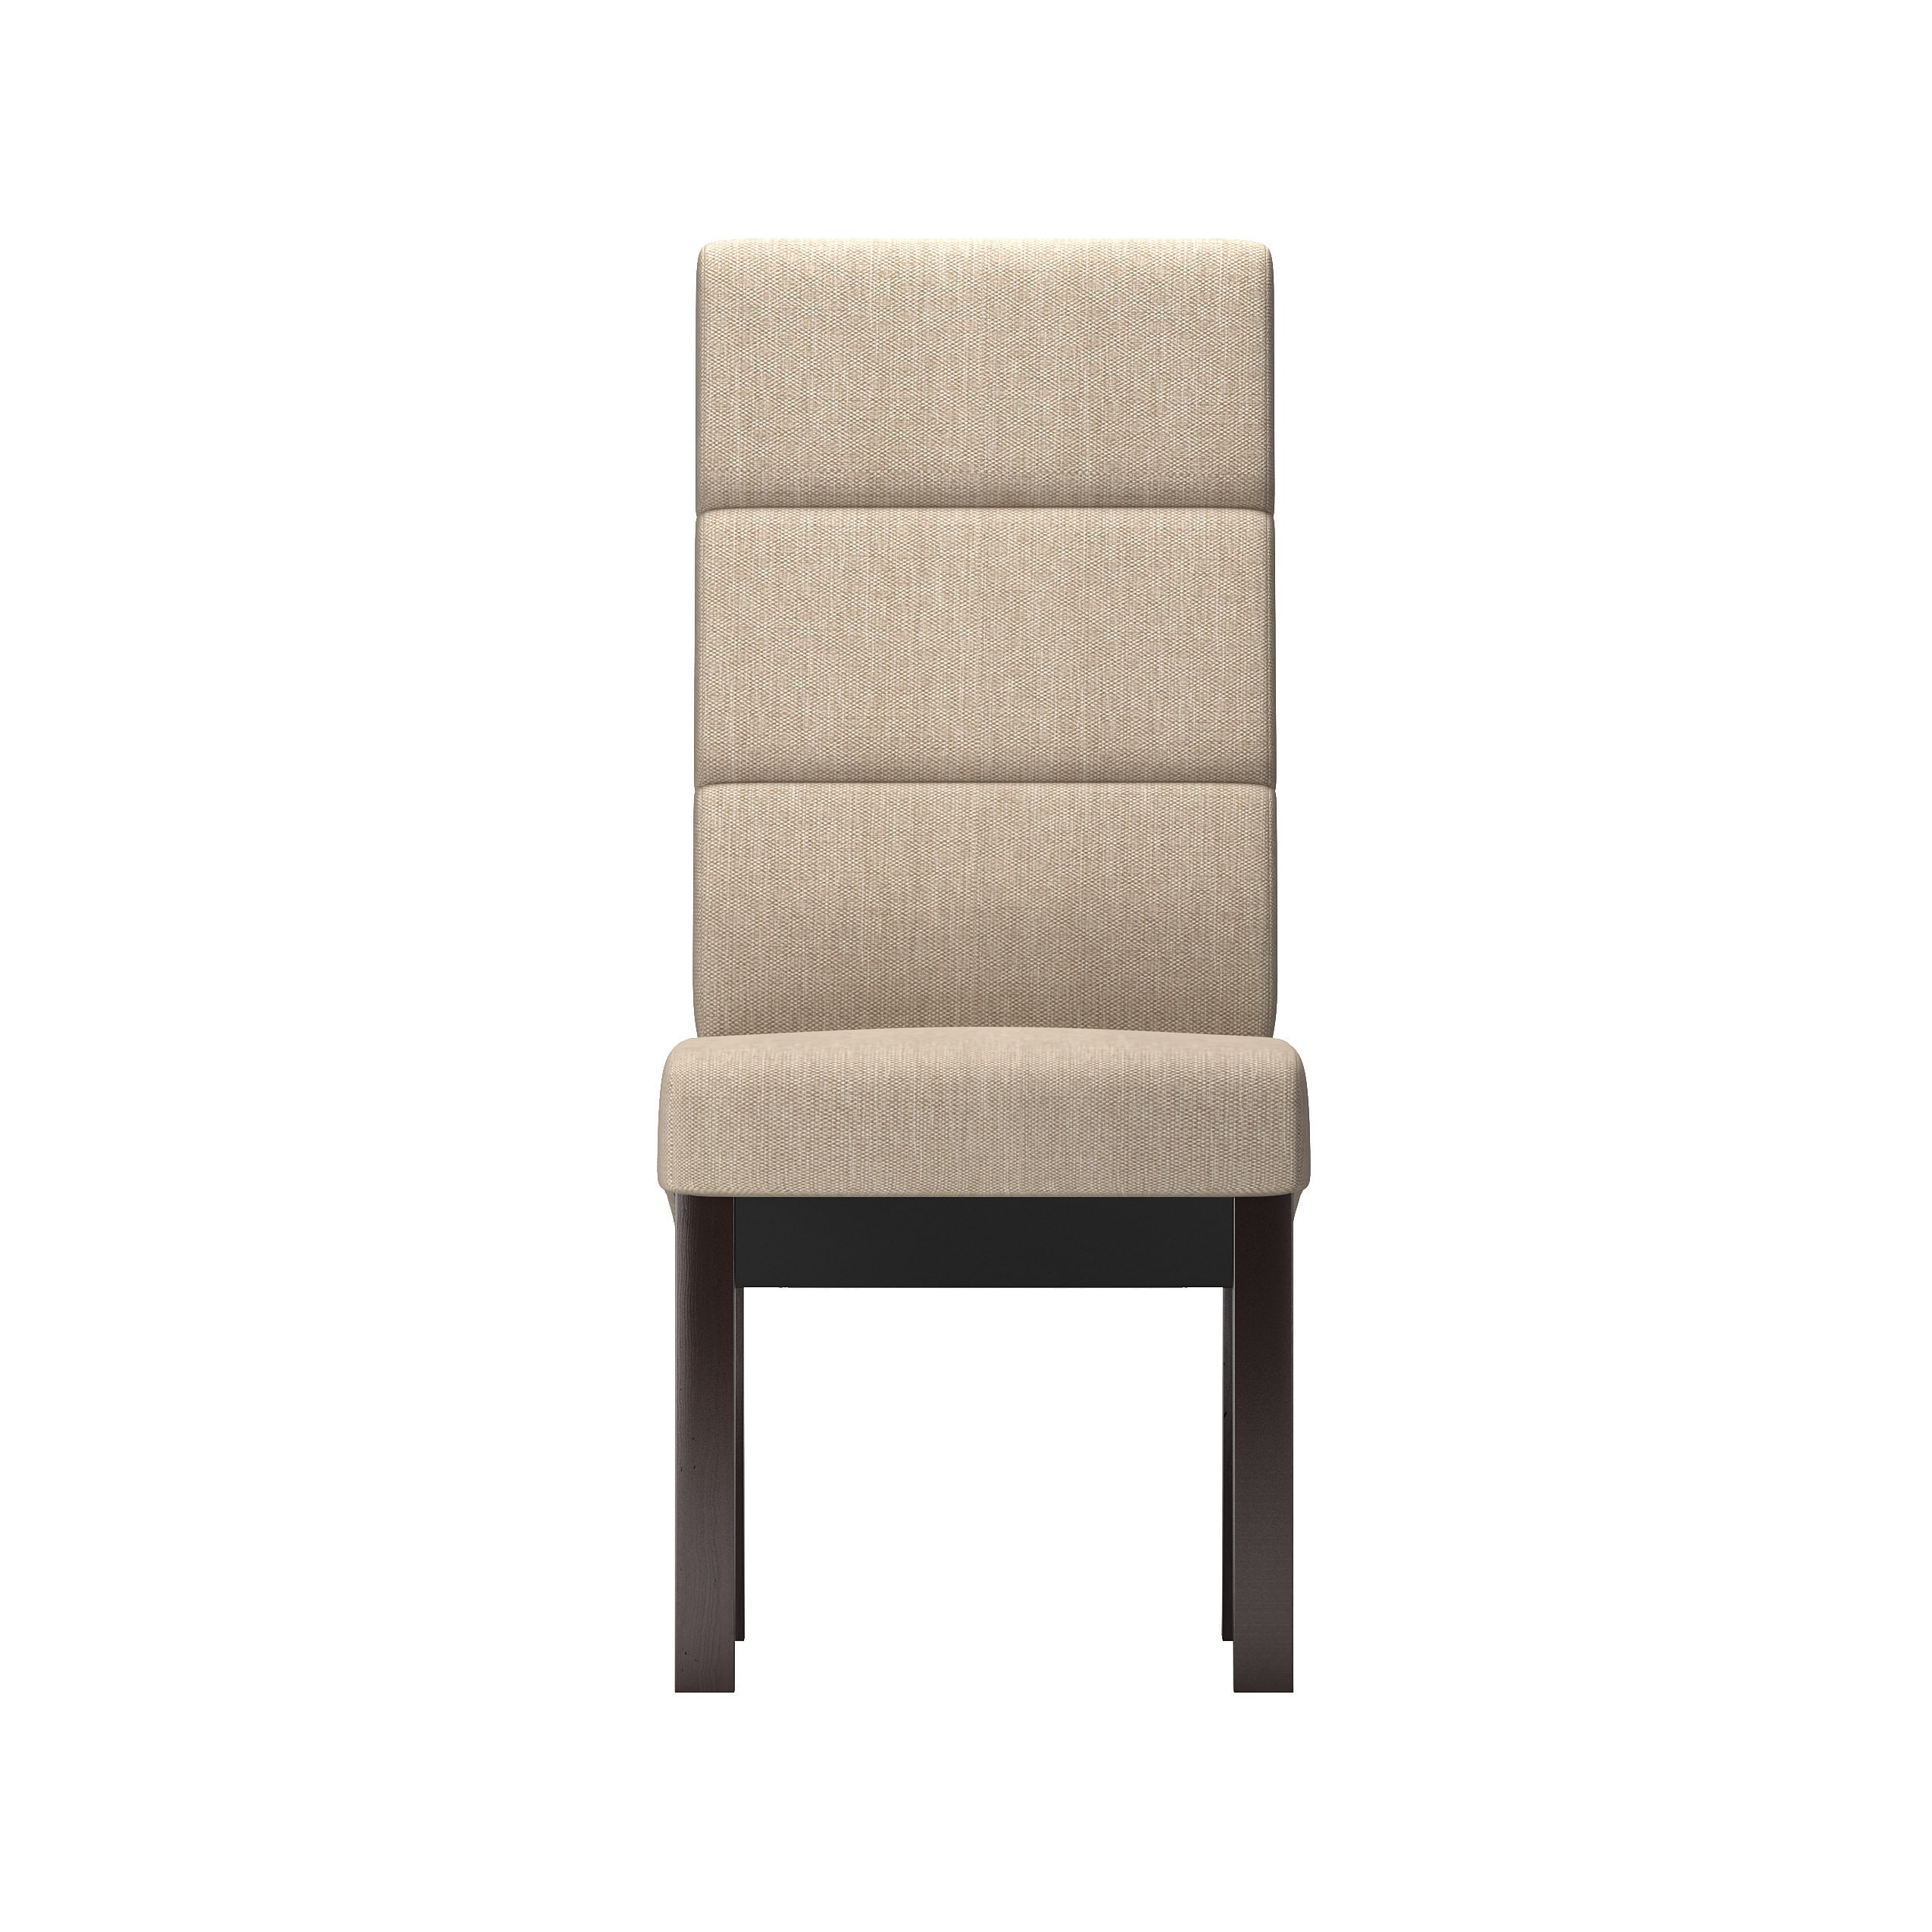 tall back chairs nail salon for sale corliving antonio upholstered dining set of 2 ebay